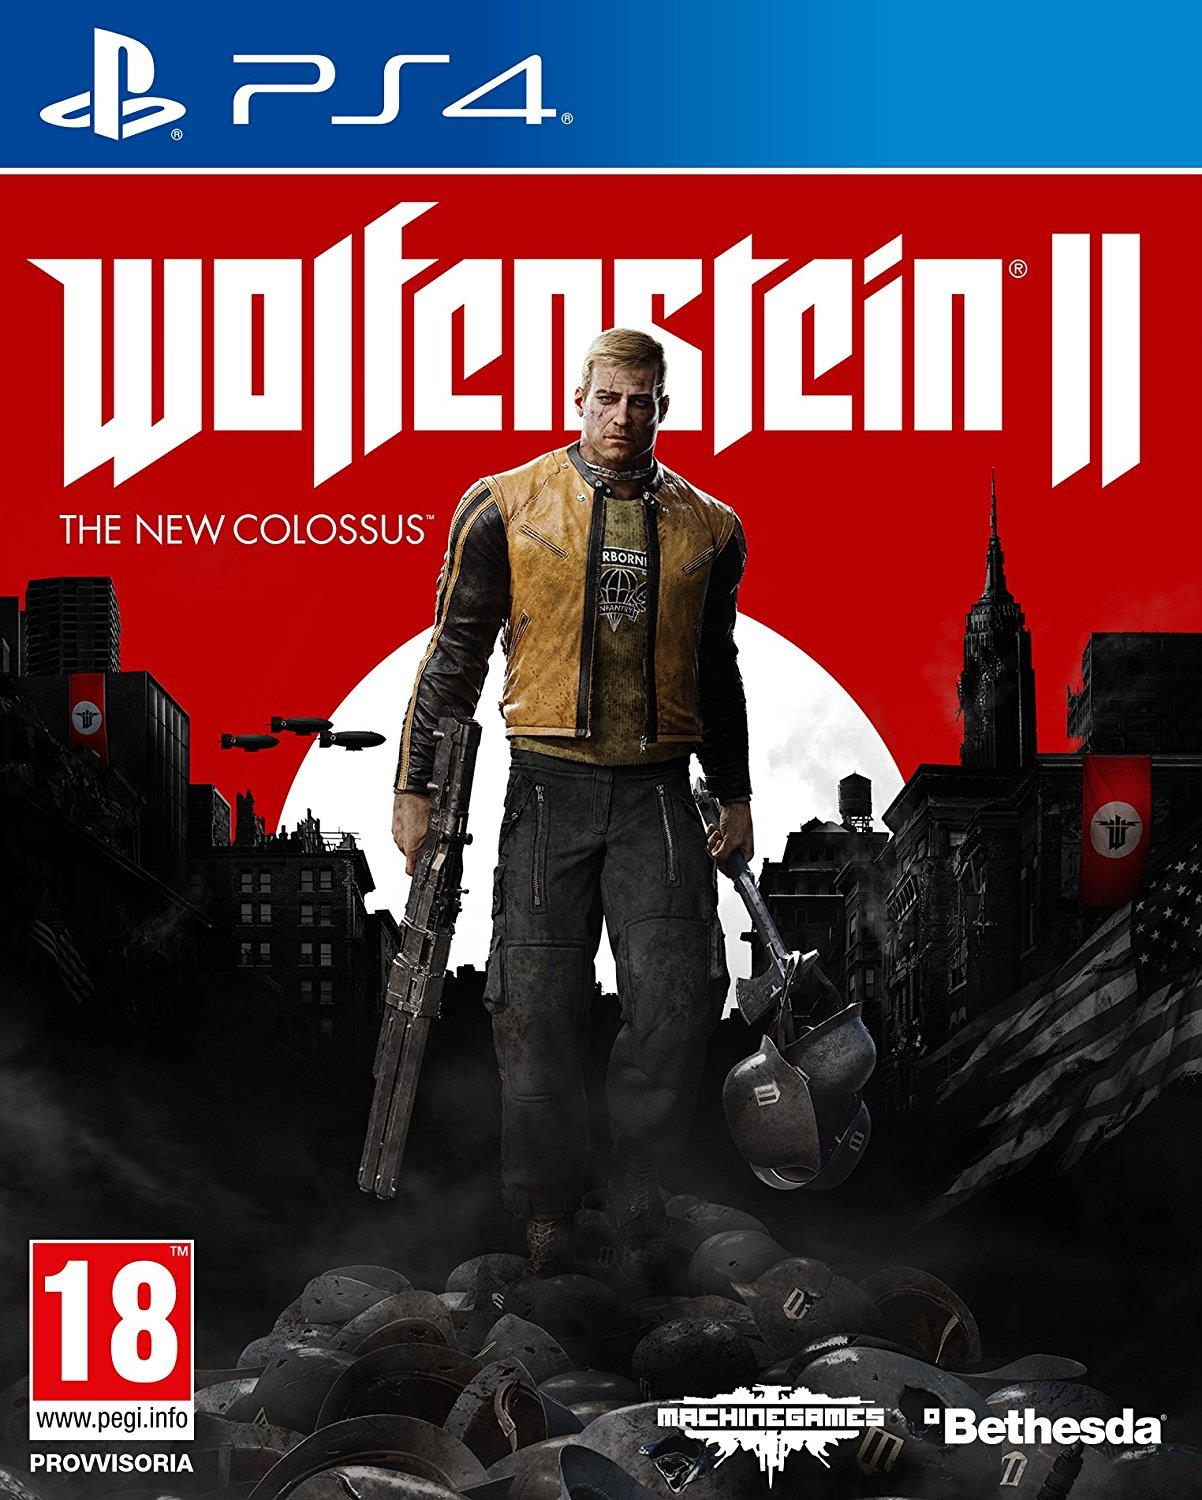 UBISOFT GAME WOLFENSTEIN II THENEW COLOSSUS IT PS4